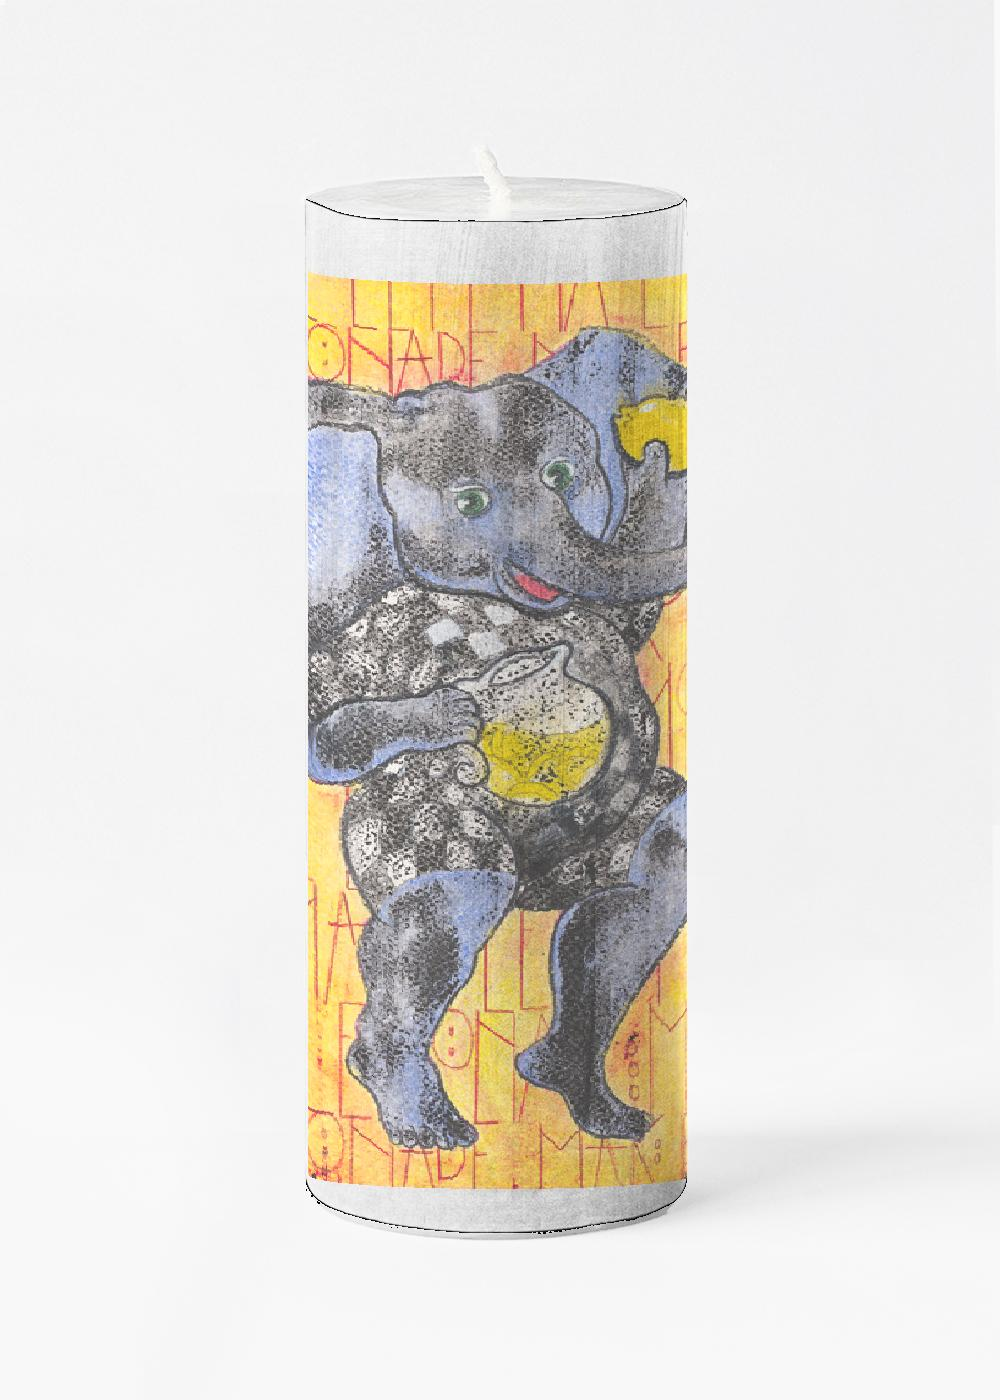 "Ganesha's Advice Candle   Illuminate your home with our unscented Large Accent Candle. As the candle burns, light shines through the custom-printed wax wrapping instantly elevating any living space. Elegant and fragrance-free, it also makes a charming and thoughtful gift.  Dimensions: 3"" wide x 9"" tall   $45.00 USD Available at: Ghostwolf Gallery, Albuquerque"